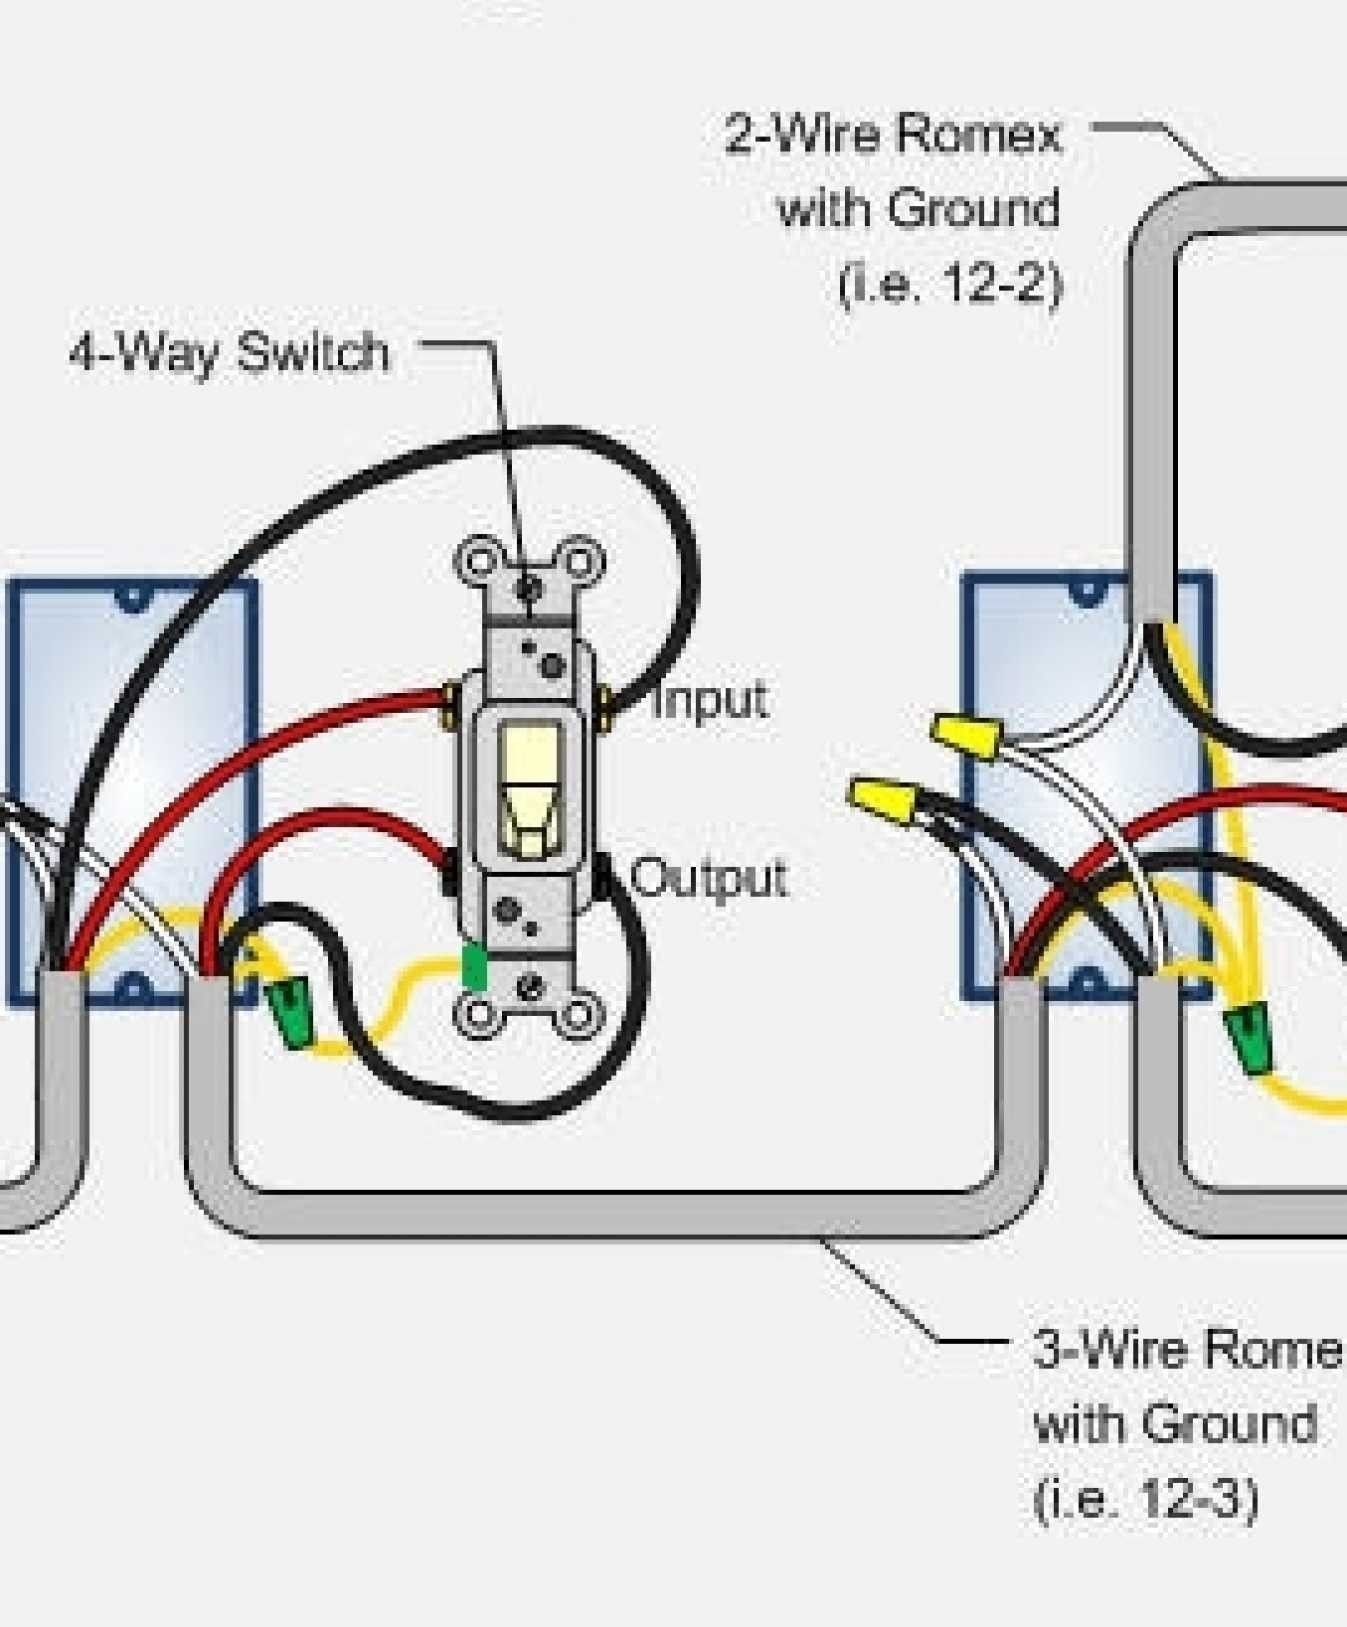 Unique Light Switch Connection Diagram #diagram #wiringdiagram #diagramming  #Diagramm #visuals… | Light switch wiring, 3 way switch wiring, Electrical  switch wiringPinterest